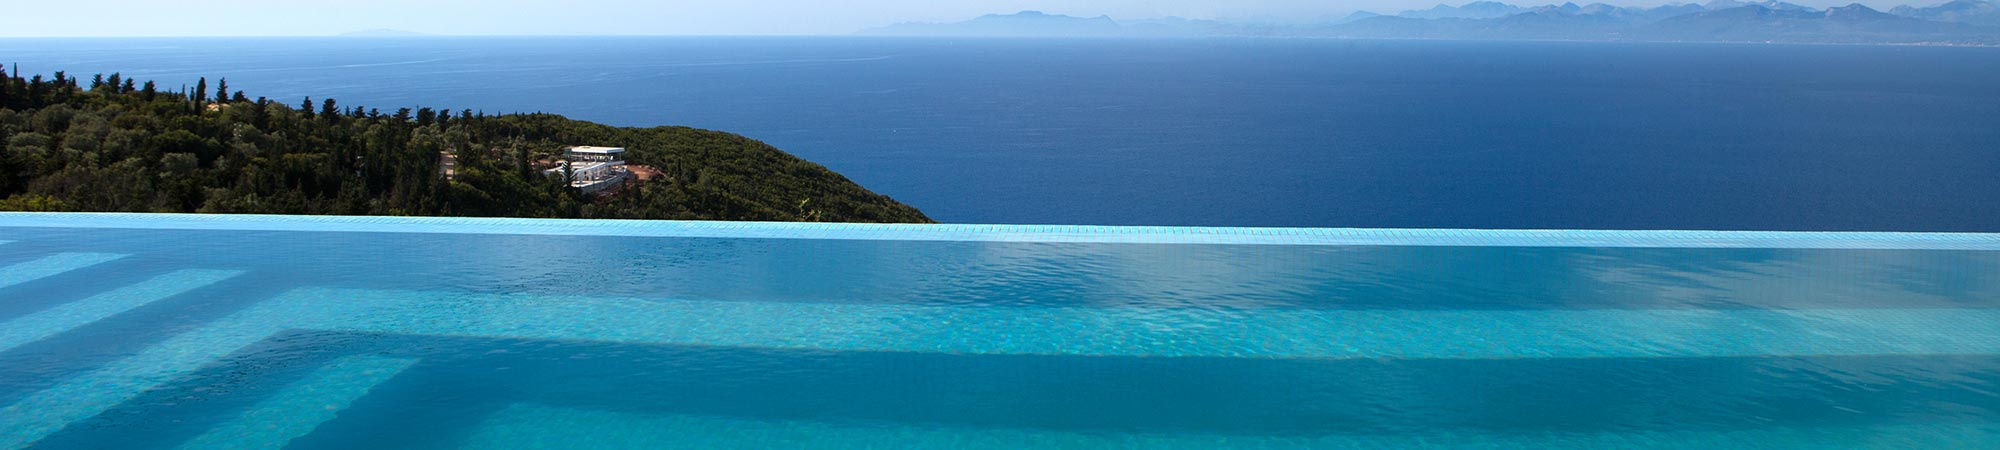 accommodation ionian horizon villas lefkada greece